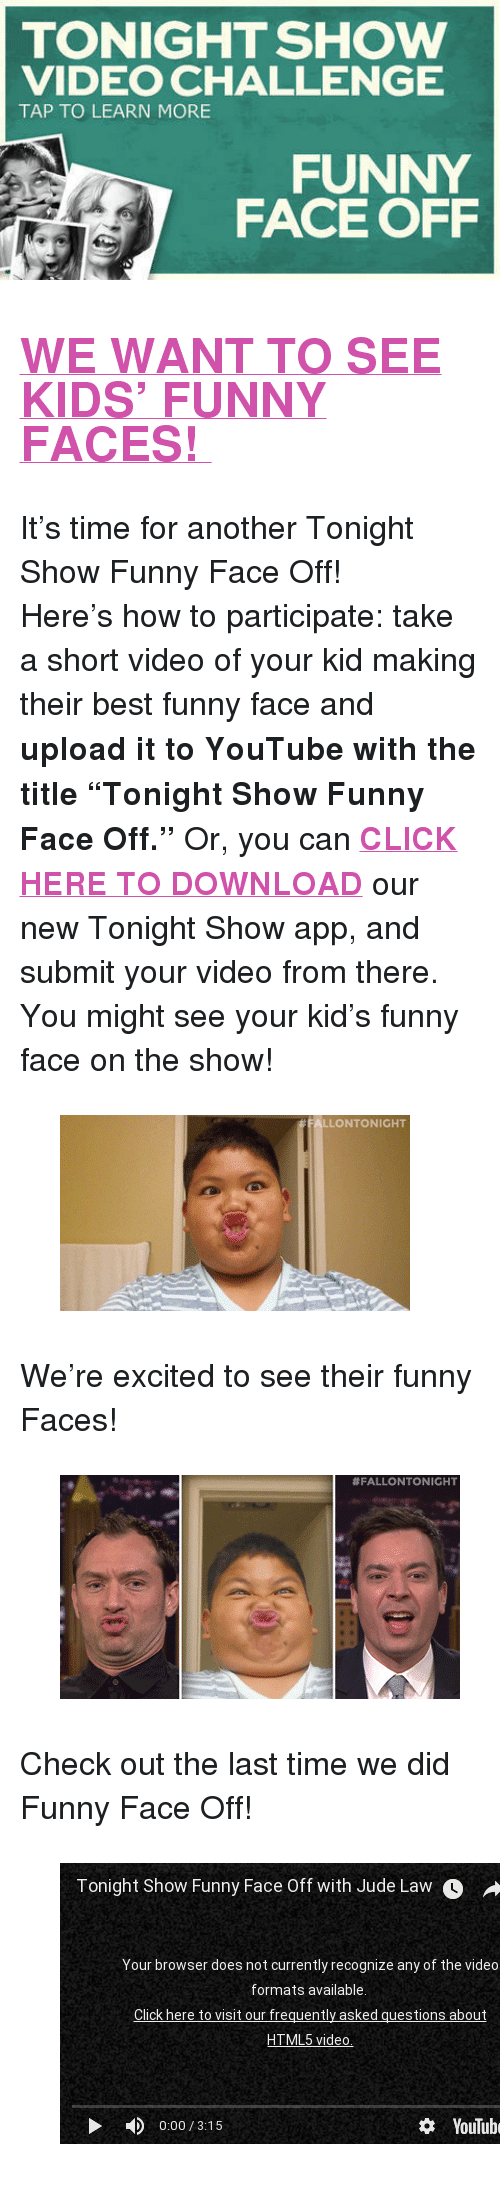 TONIGHT SHOW VIDEO CHALLENGE TAP TO LEARN MORE FUNNY FACE